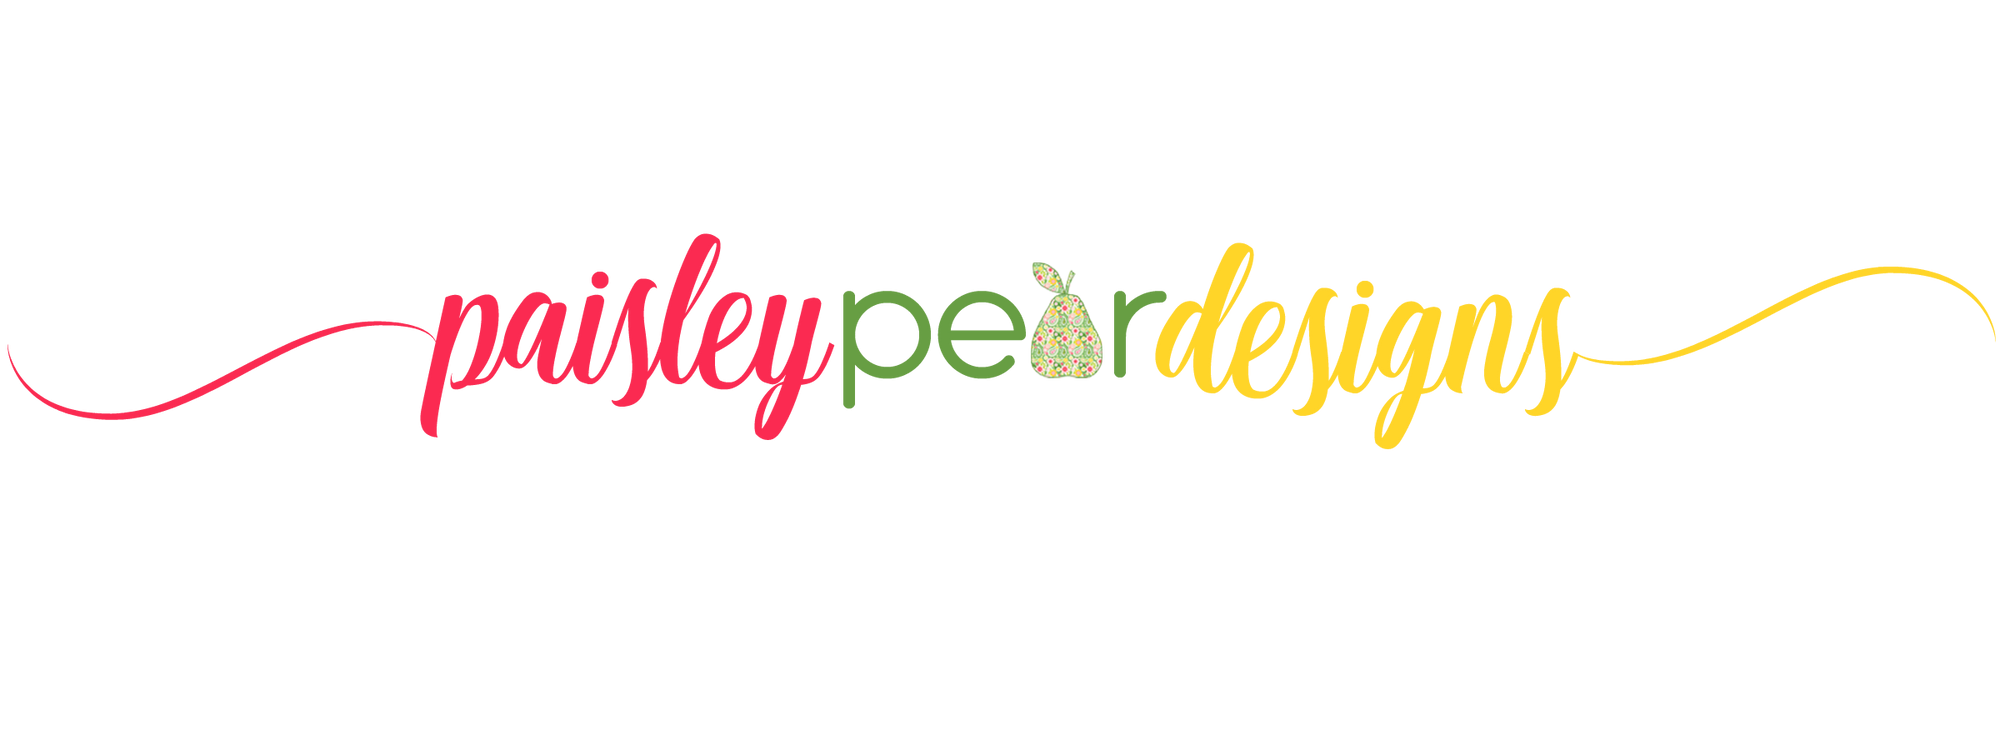 Paisley Pear Designs and Invites